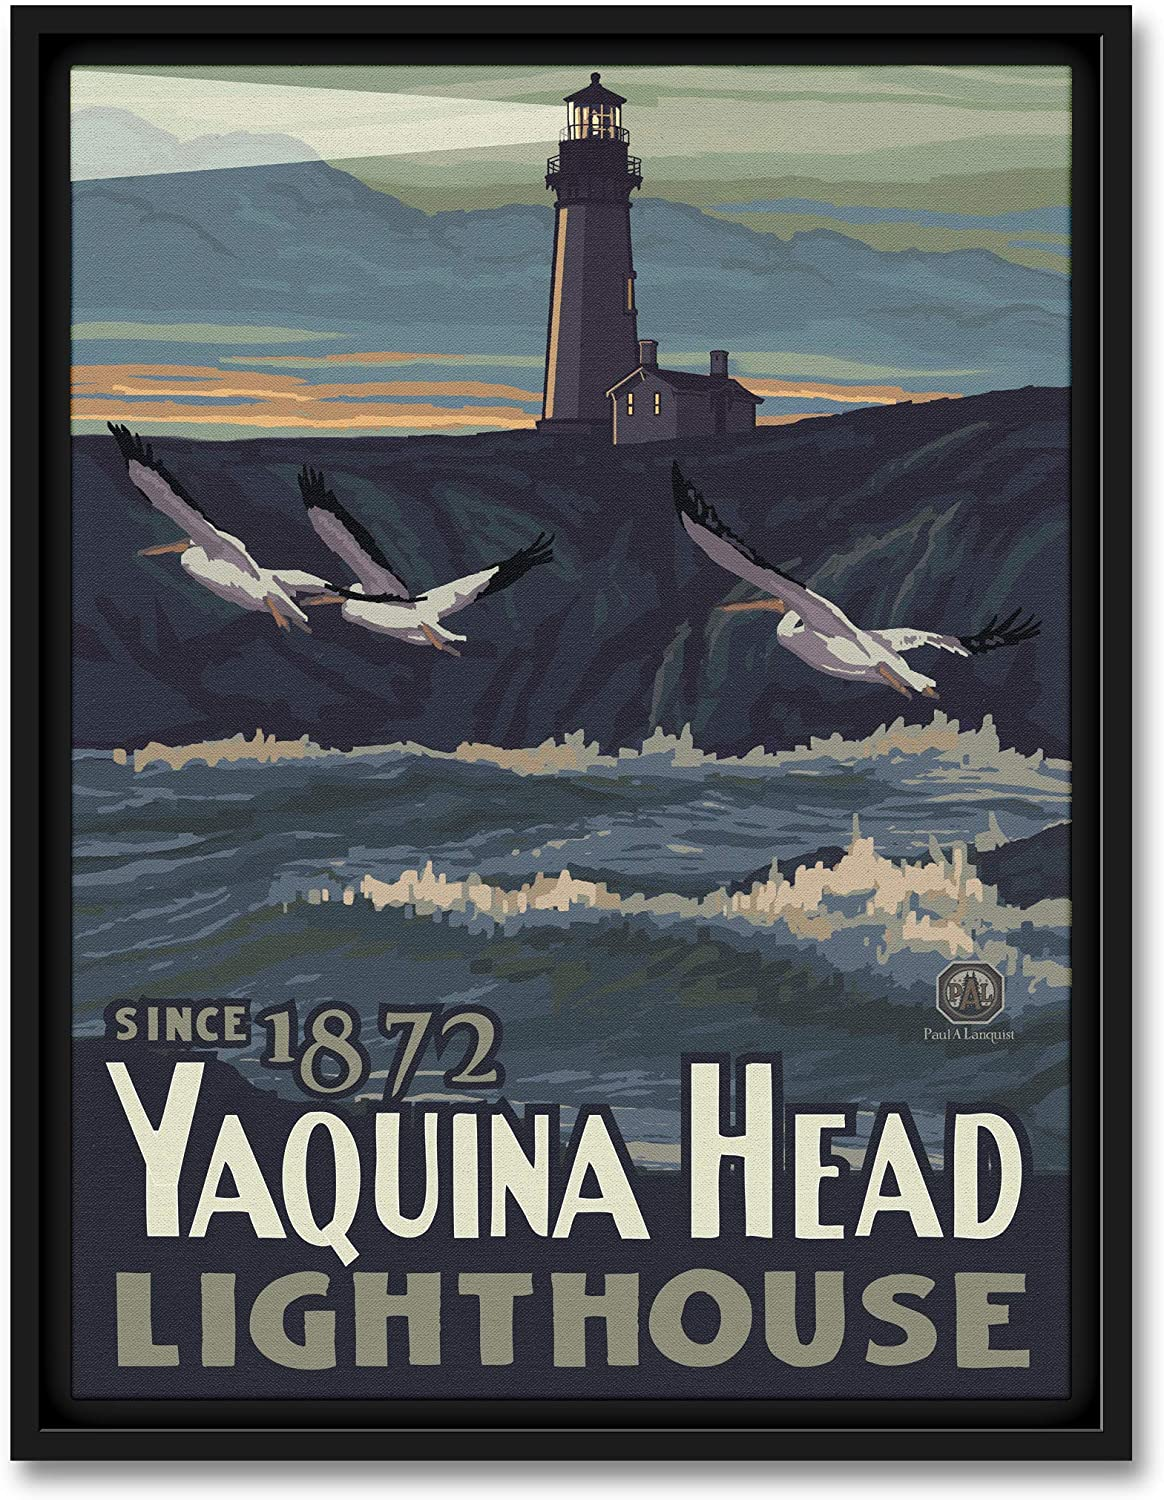 Yaquina Head Newport Oregon Lighthouse with Pelicans Professionally Framed Giclee Archival Canvas Wall Art for Home & Office from Original Travel Artwork by Artist Paul A. Lanquist 9